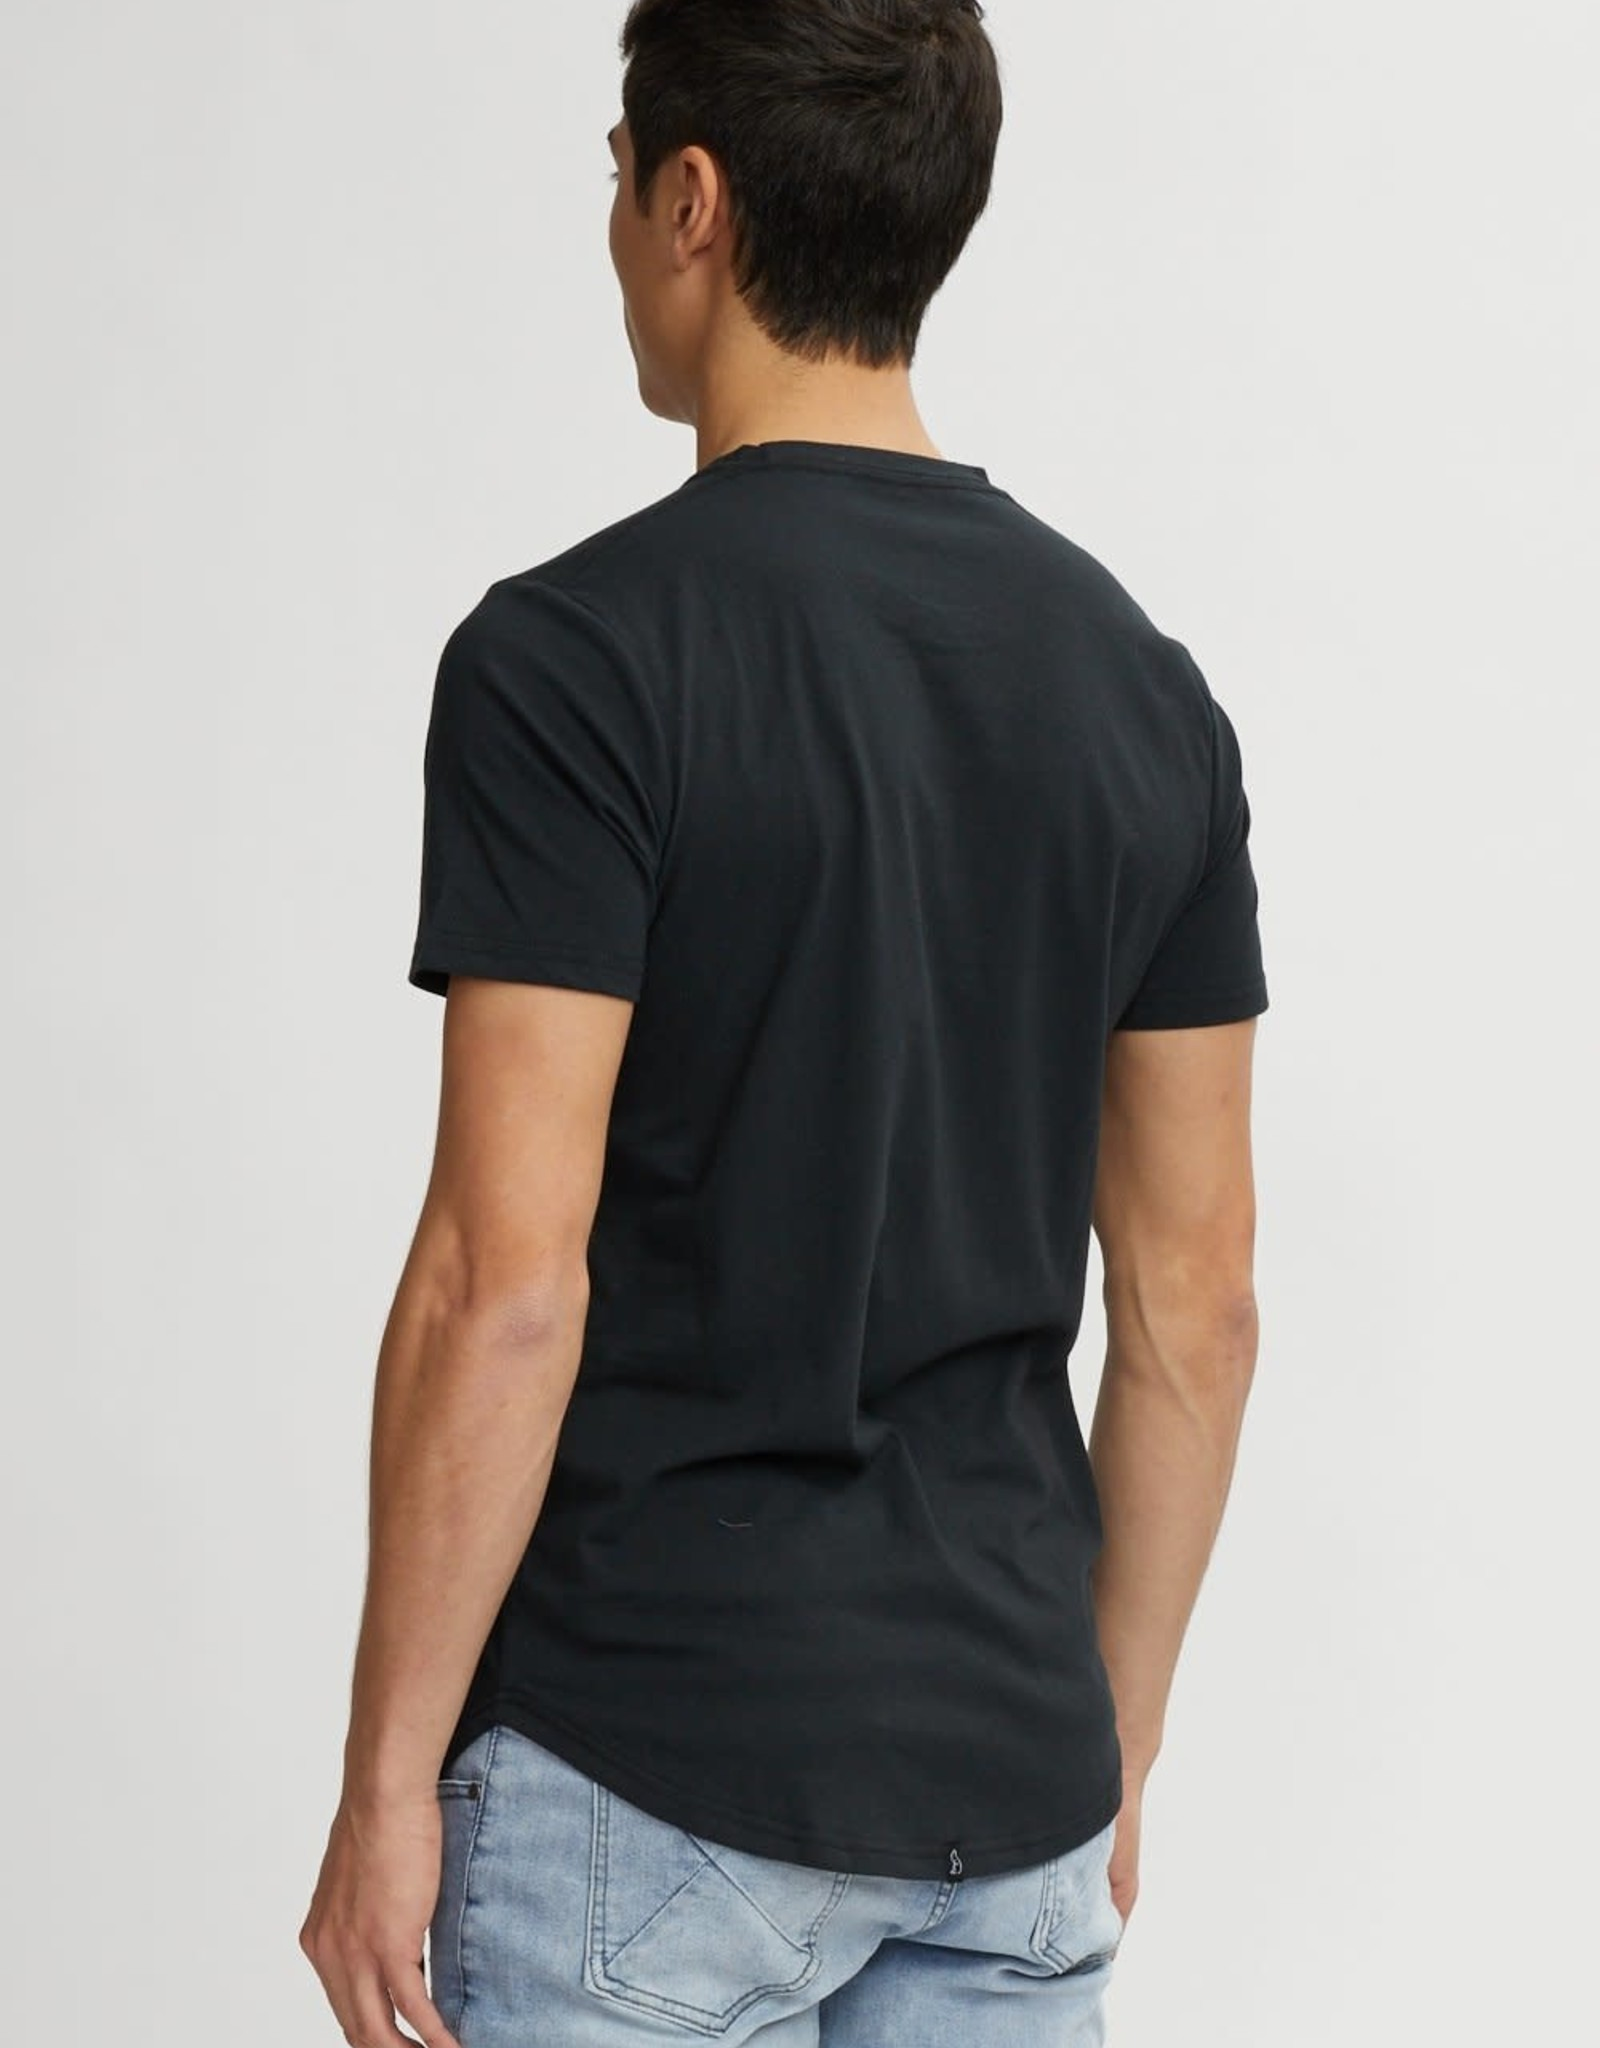 Kuwalla Tee KW Blk Easy Scoop Tee